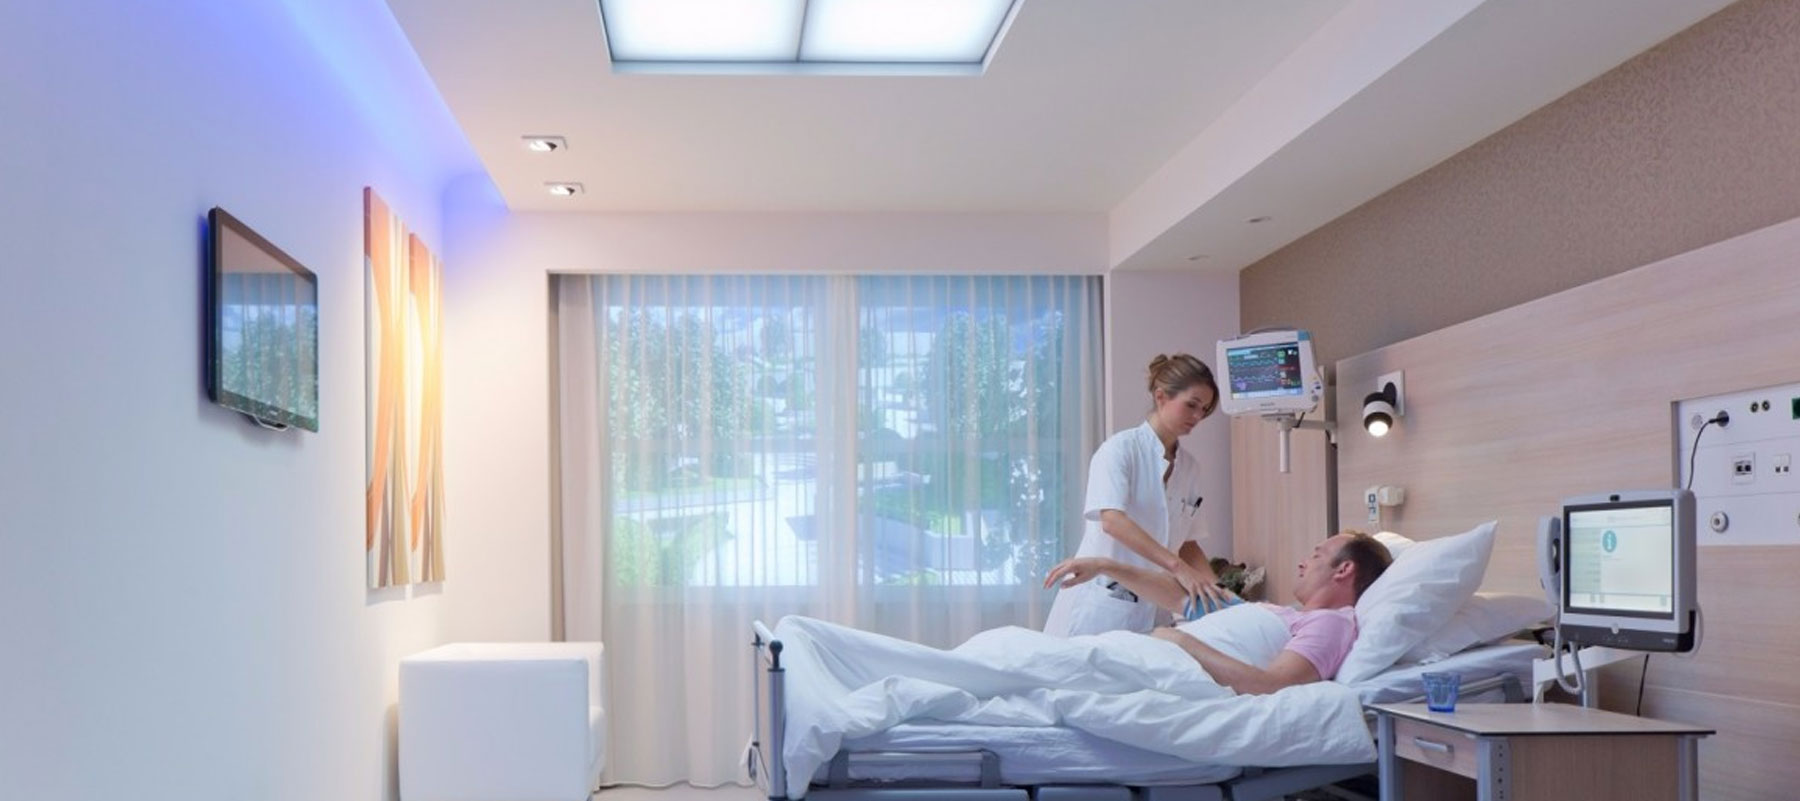 Benefits of LEDs and Controls in Hospitals and Healthcare Facilities